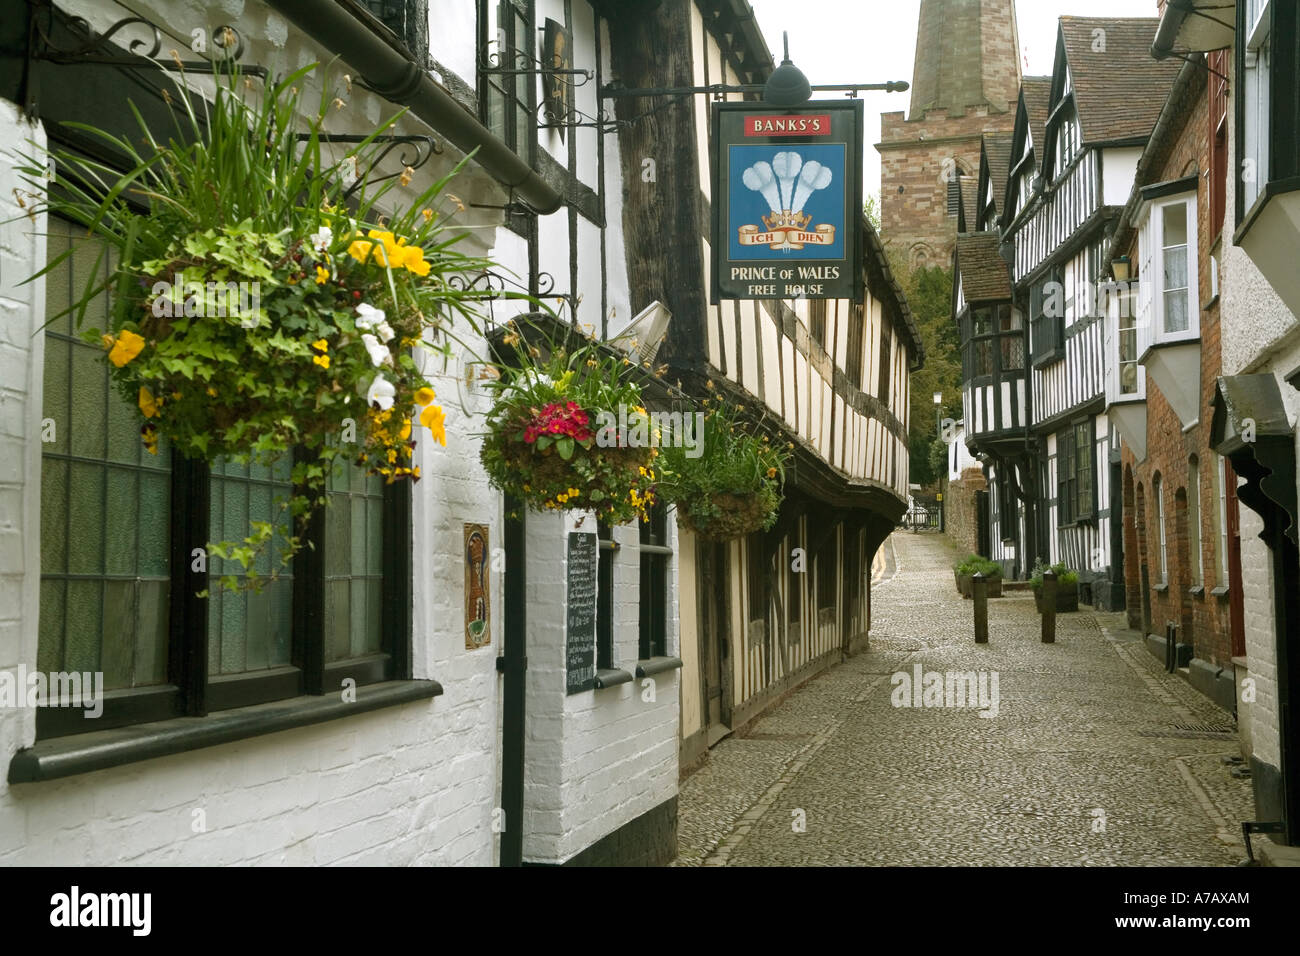 England. Herefordshire. Ledbury, Church Lane - Stock Image